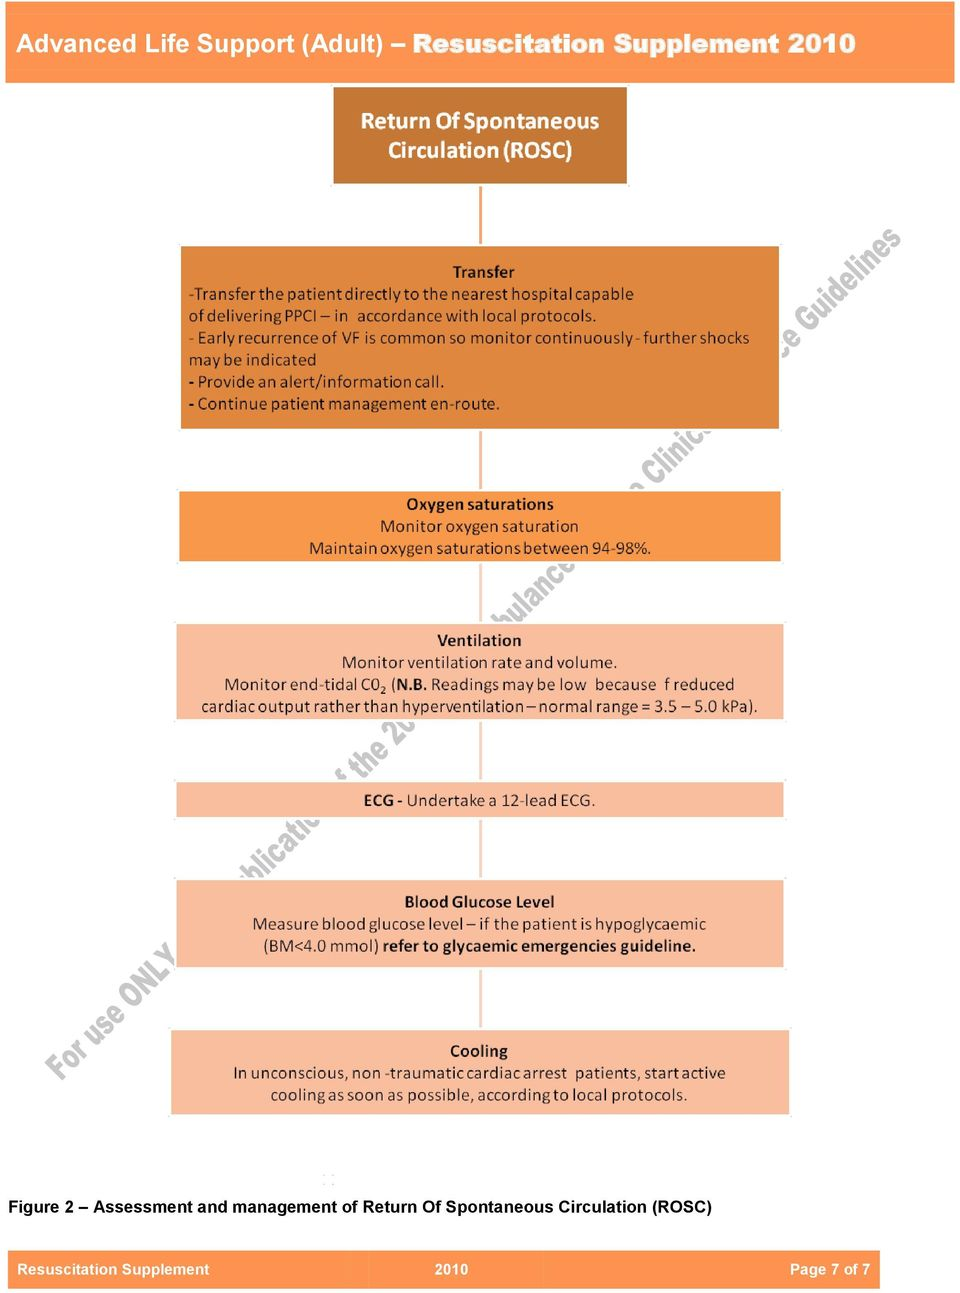 management of Return Of Spontaneous